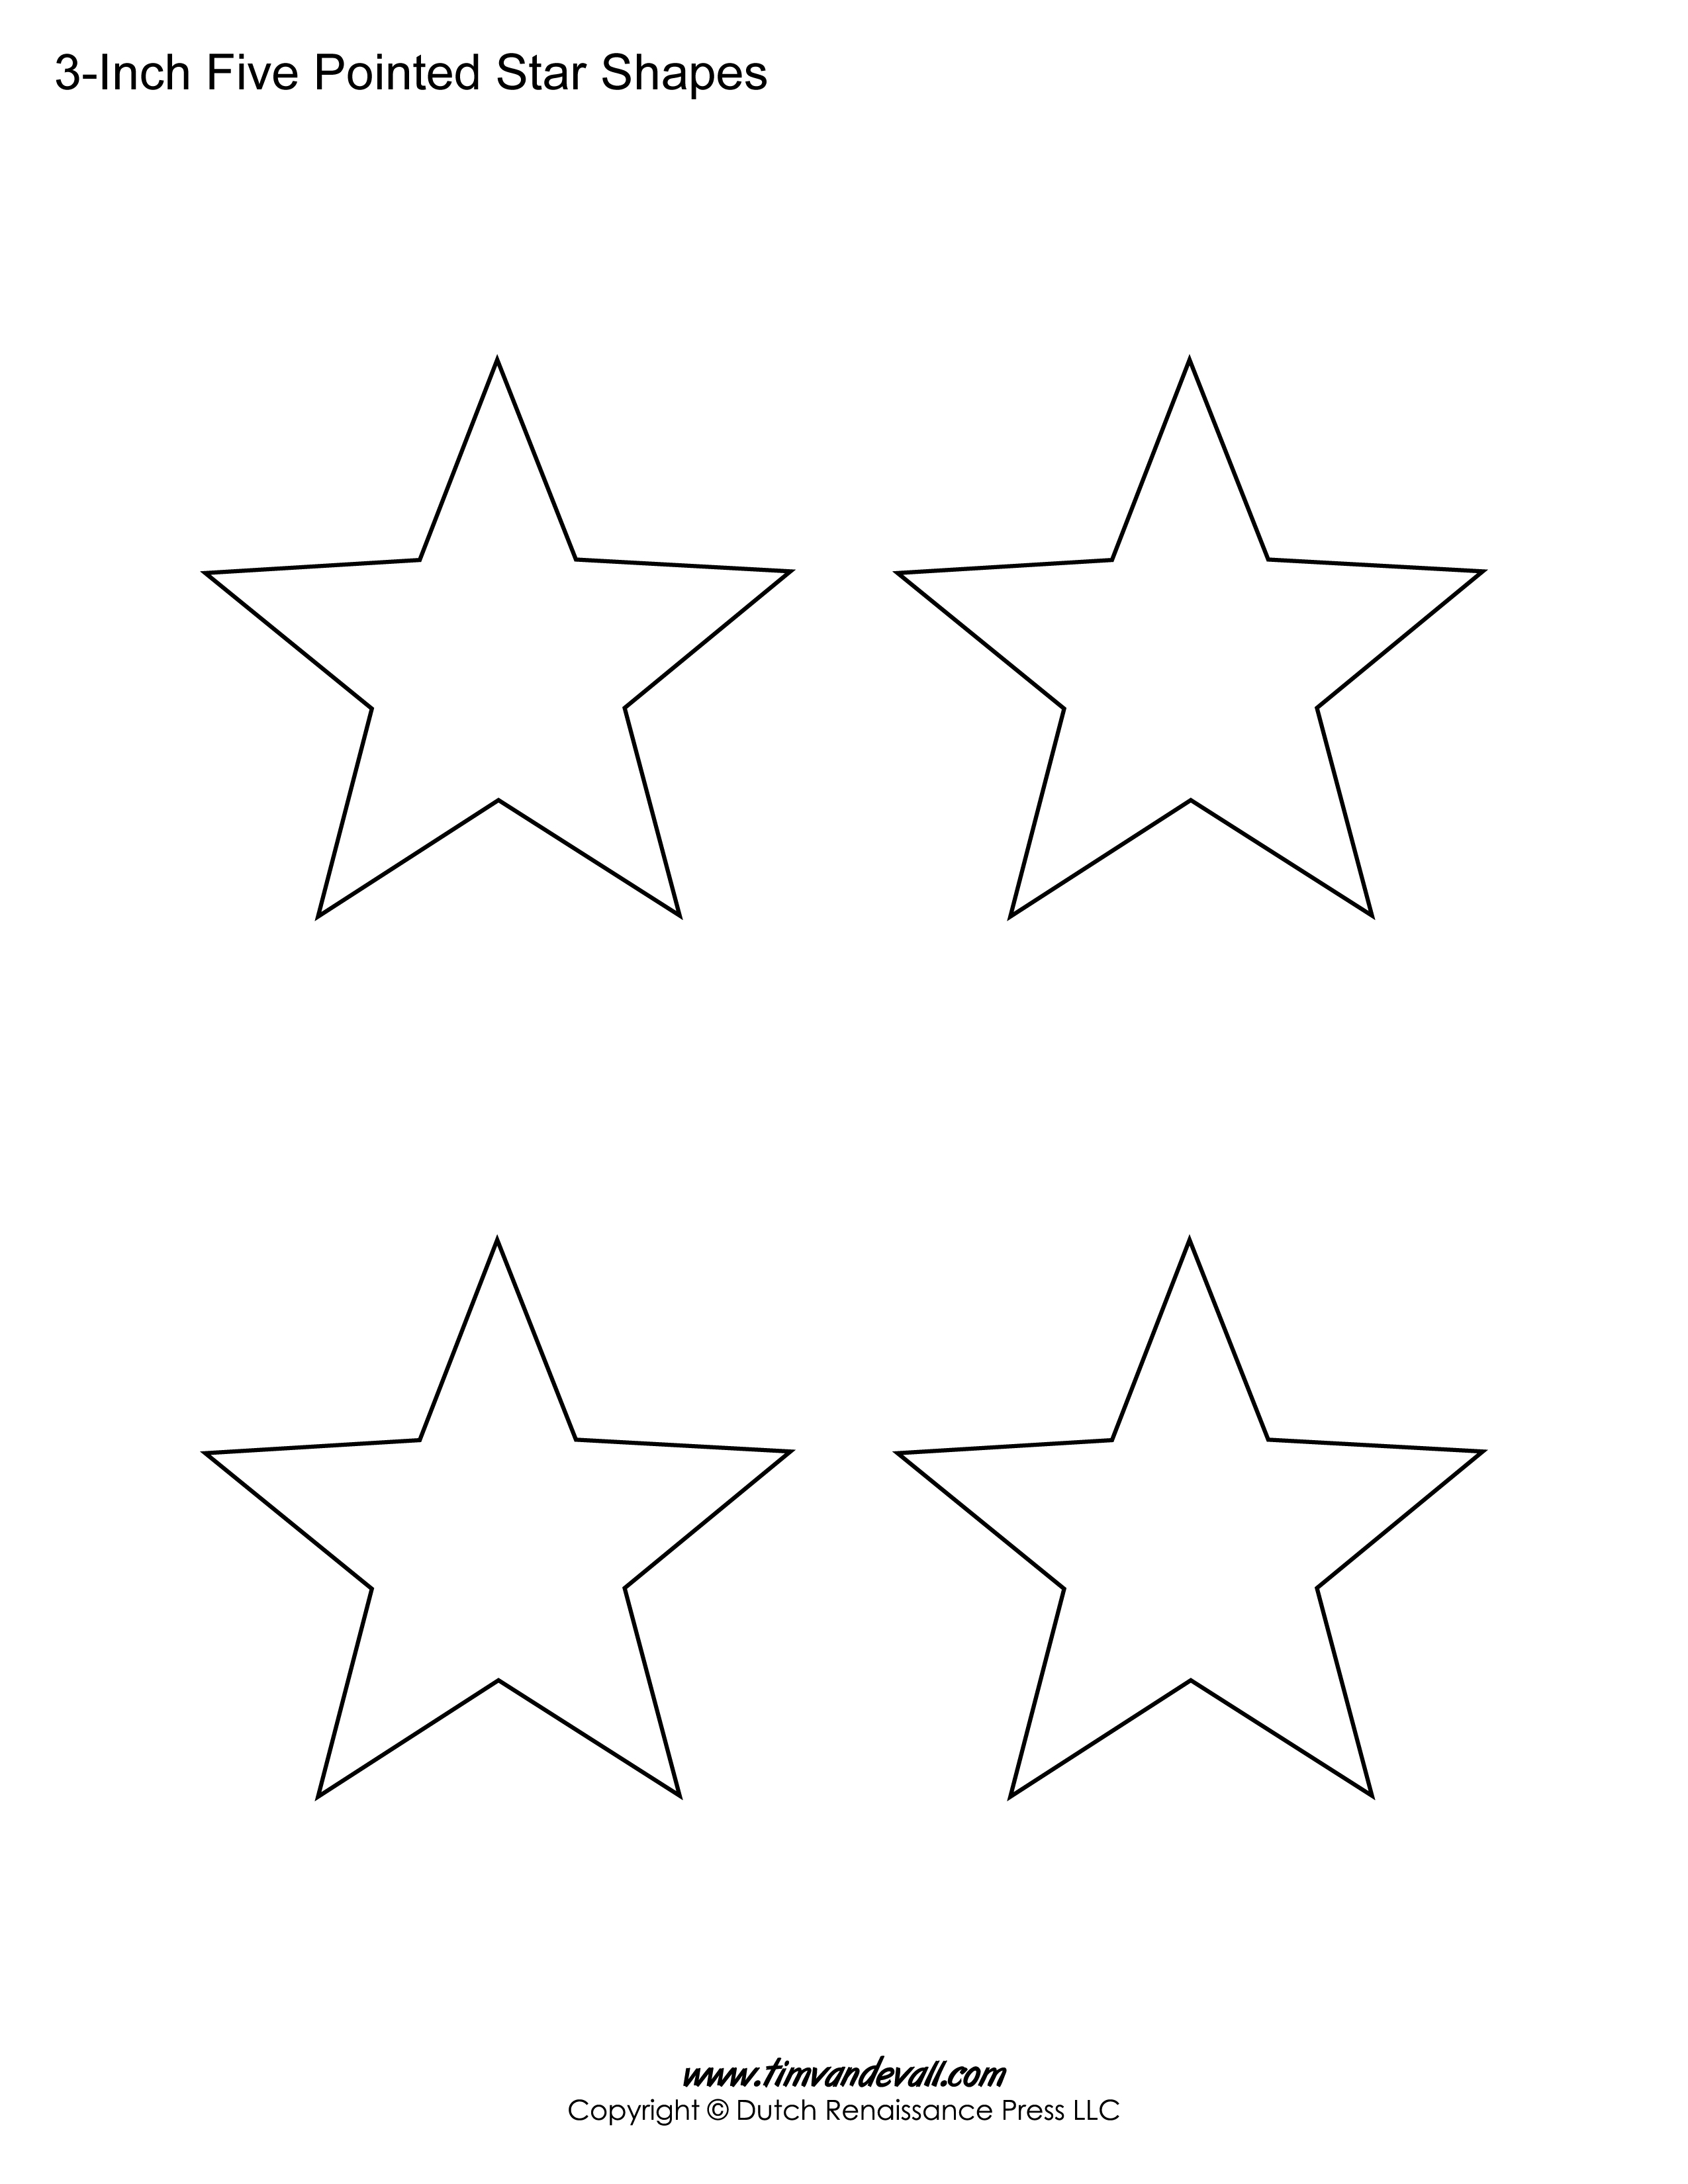 2550x3300 Printable Five Pointed Star Templates Blank Shape PDFs